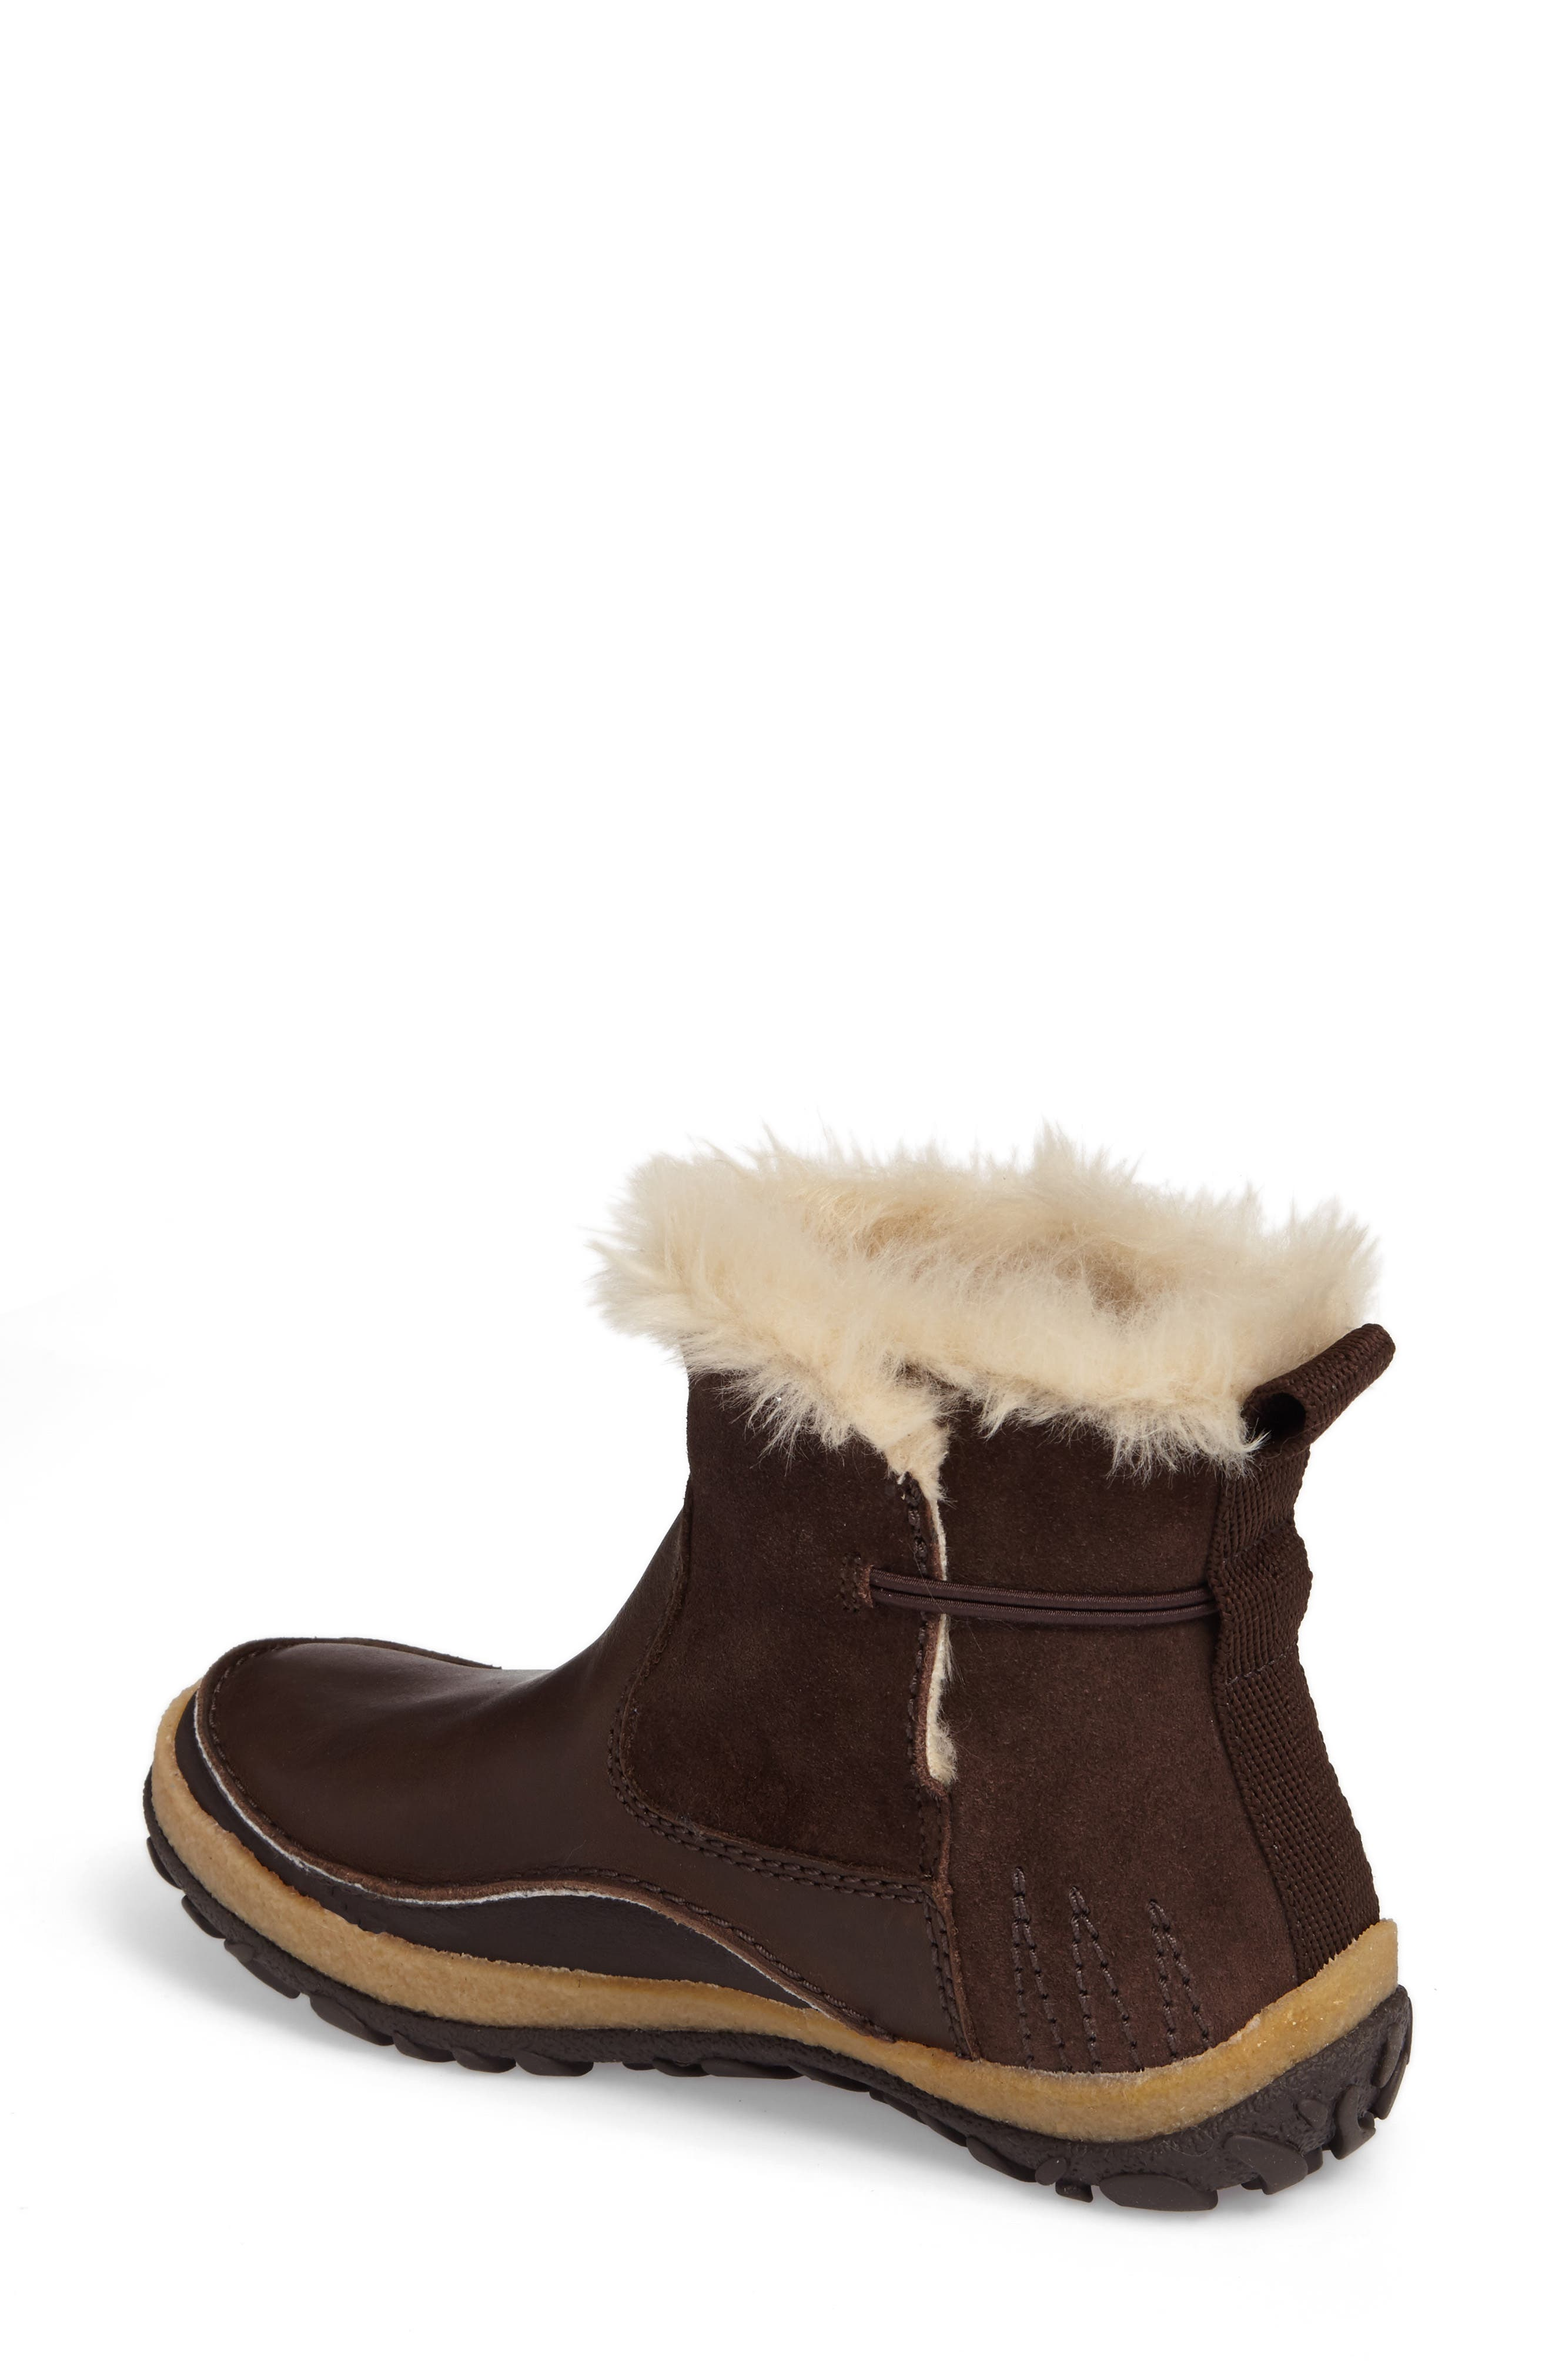 Tremblant Pull-On Polar Waterproof Bootie,                             Alternate thumbnail 2, color,                             Espresso Leather